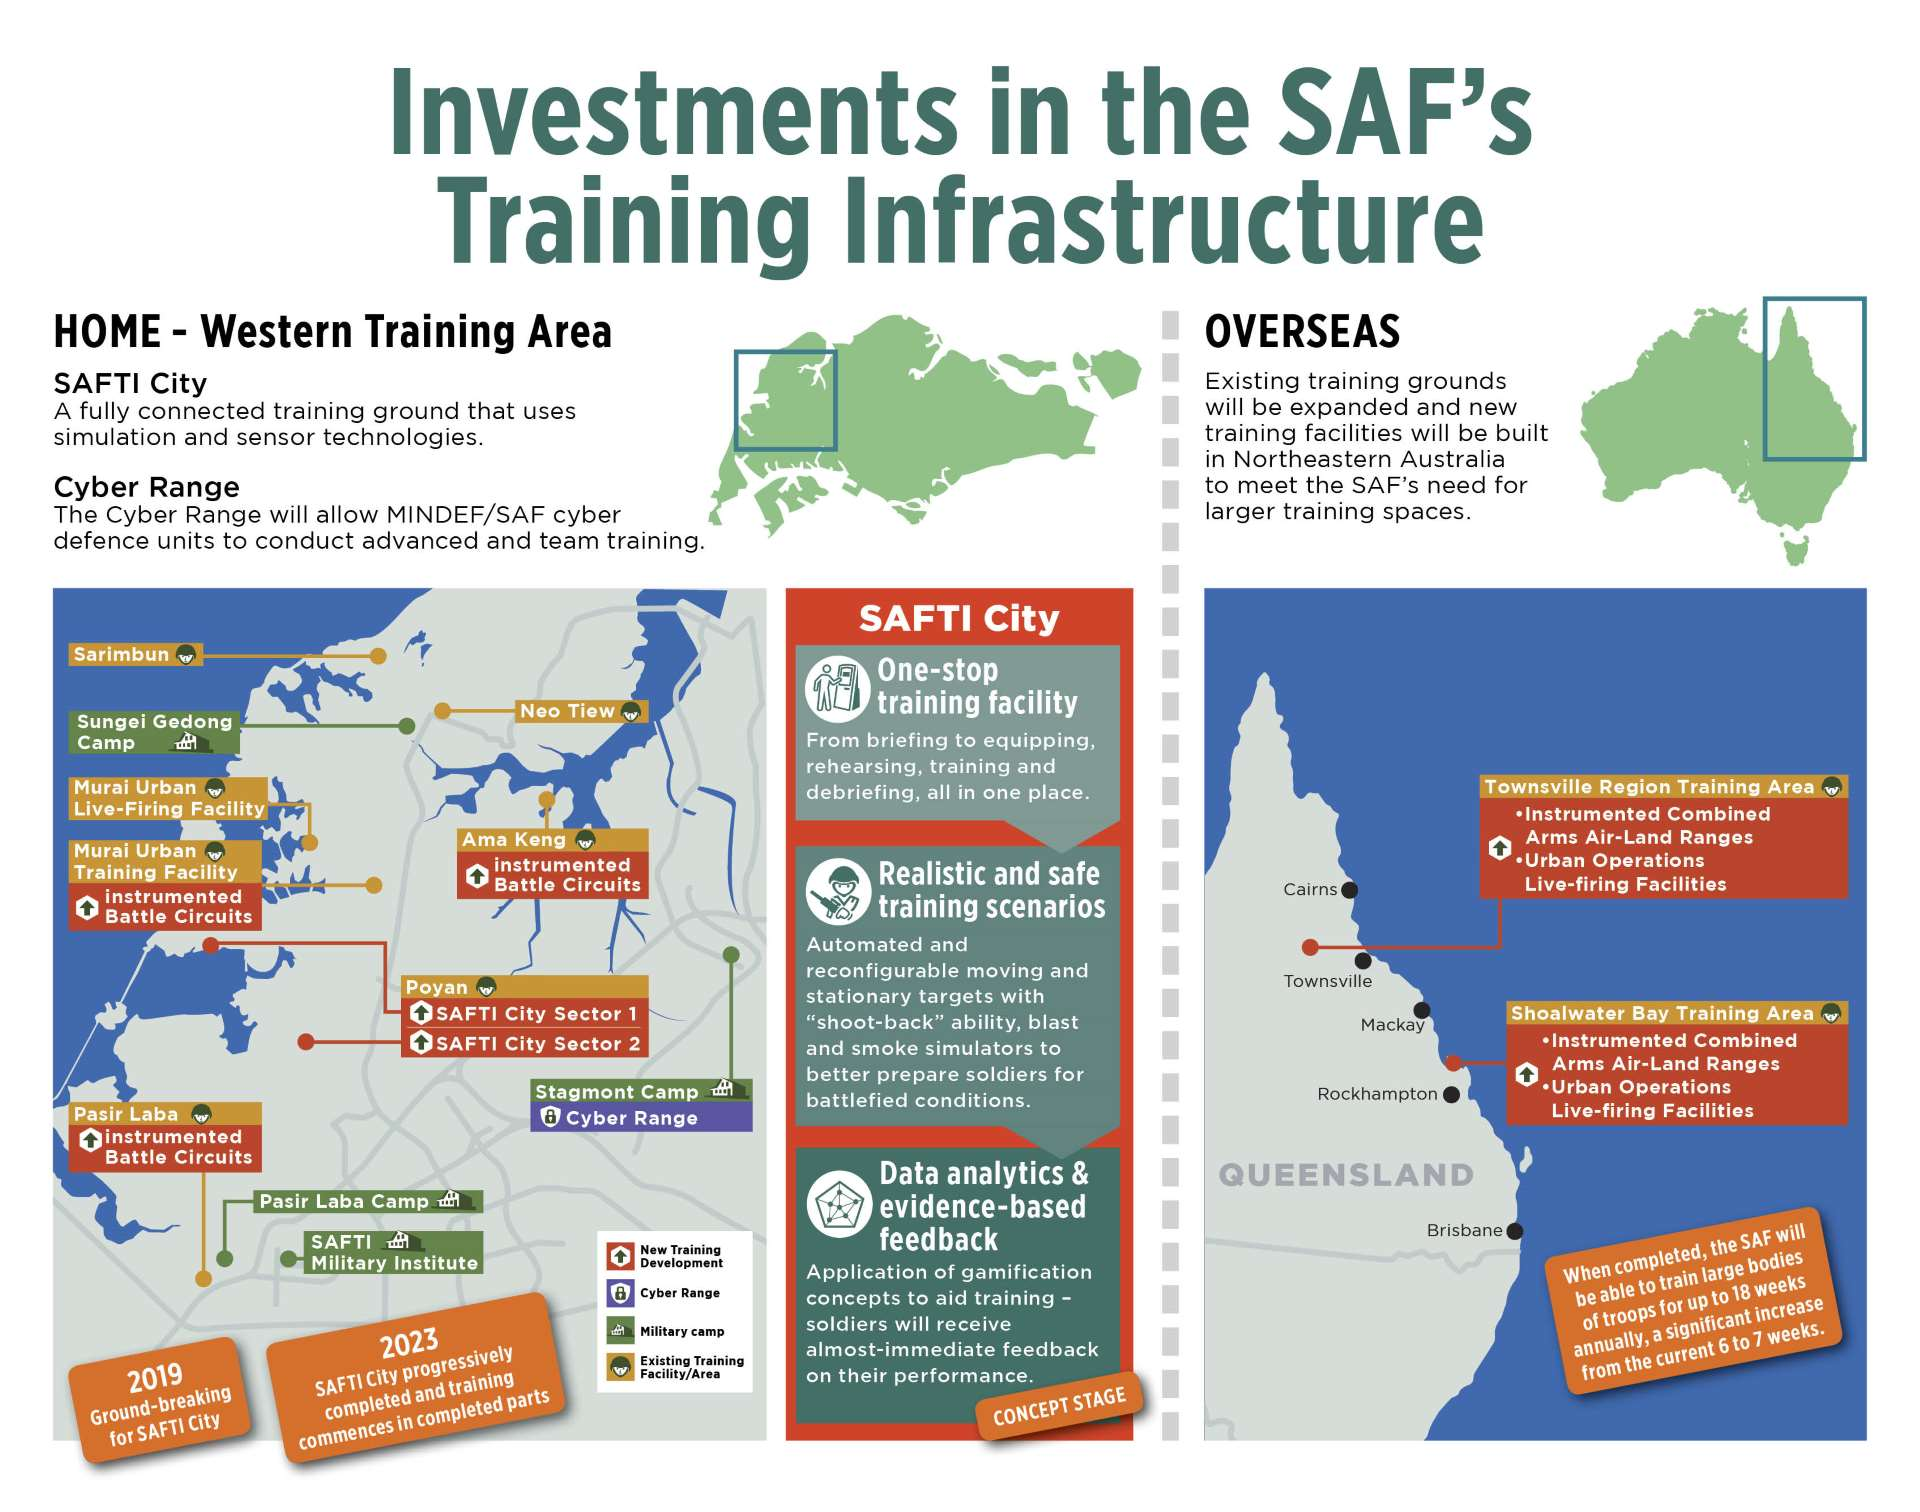 Investments in the SAF's Training Infrastructure